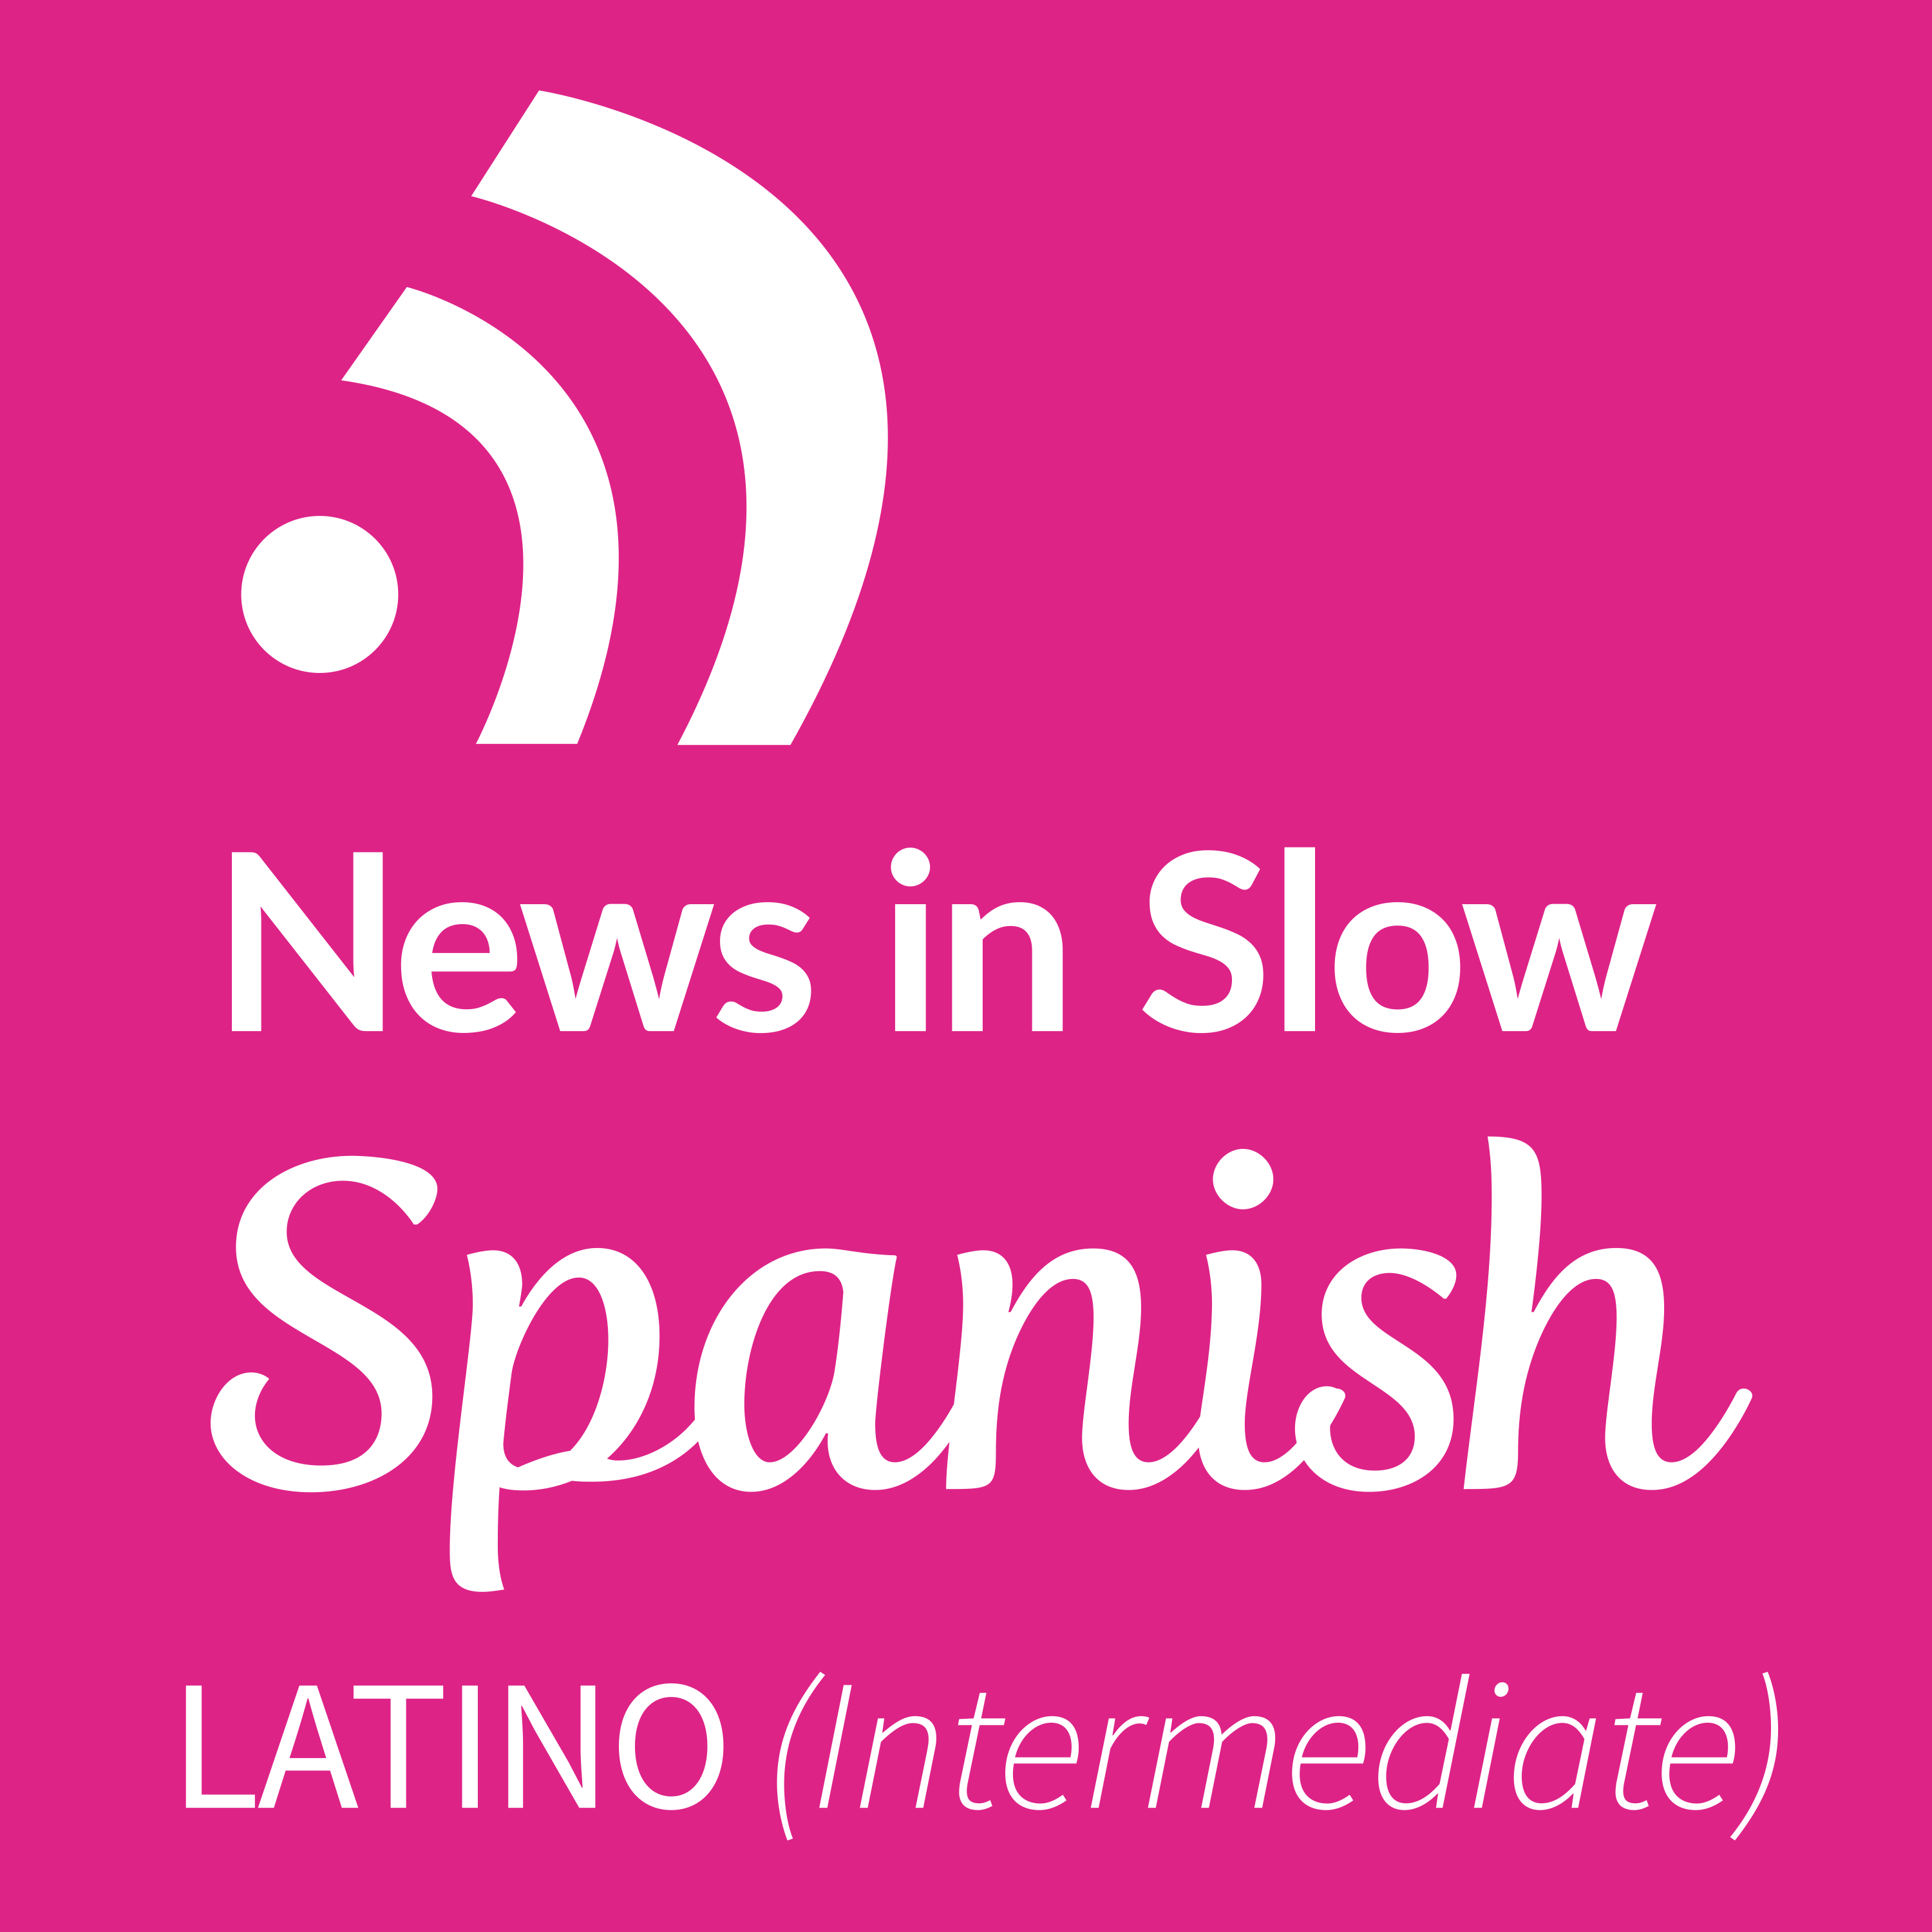 News in Slow Spanish Latino - # 175 - Learn Spanish through current events